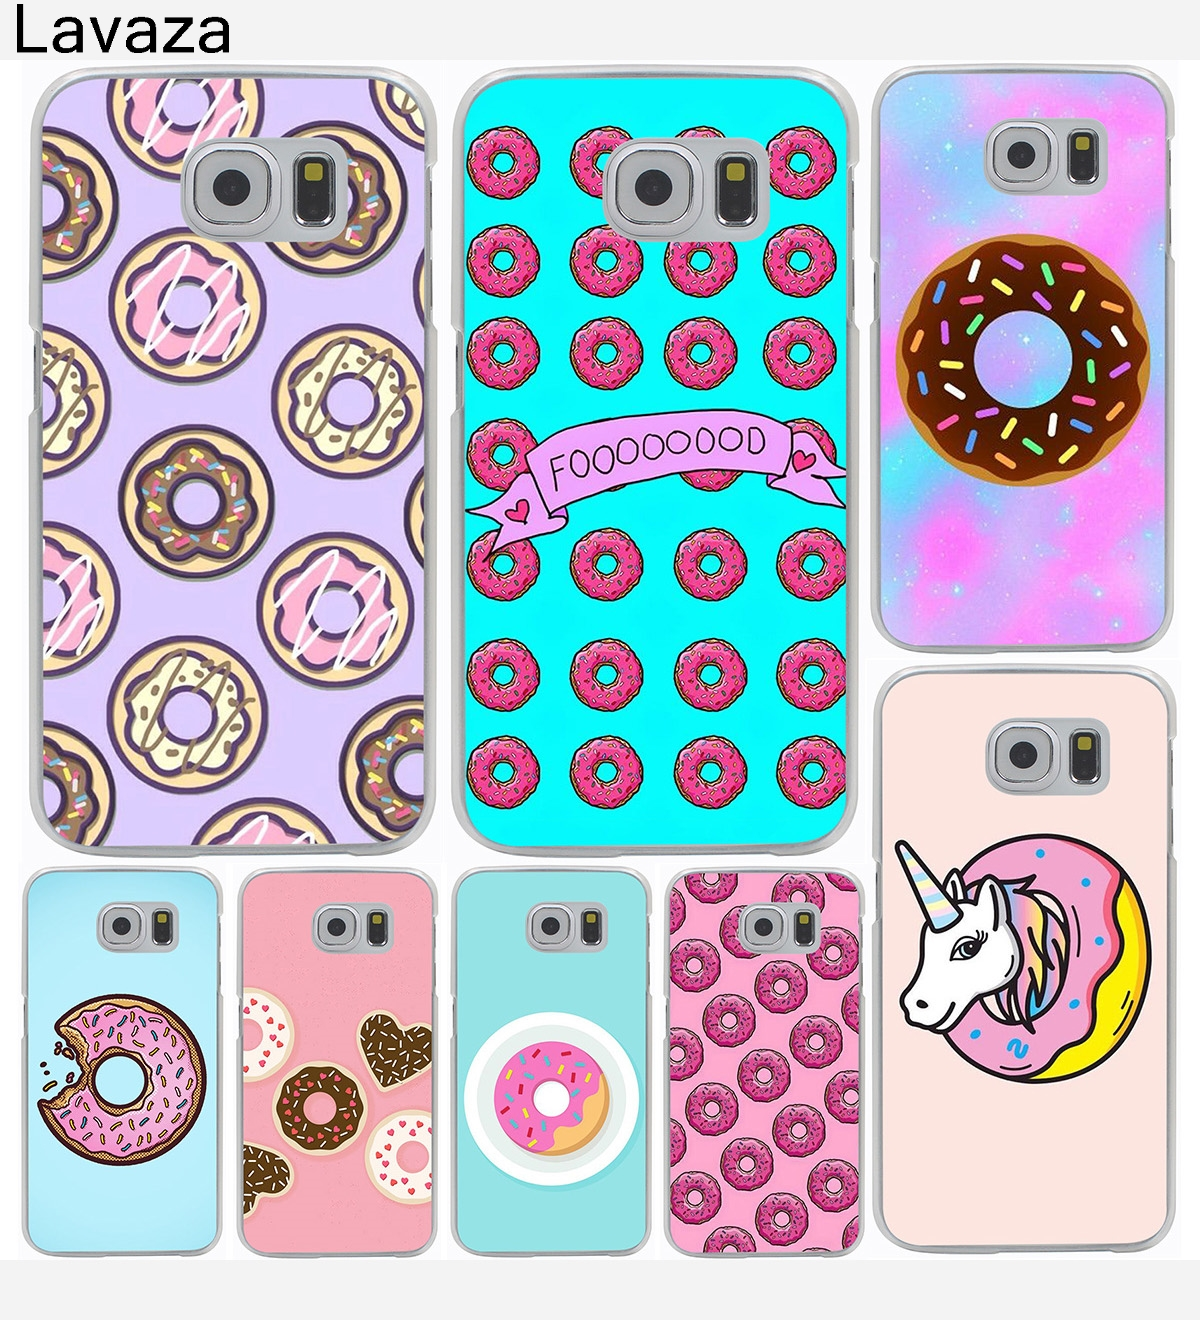 Banana Fries Donuts Hard Cover Case for Galaxy S3 S4 S5 & Mini S6 S7 S8 Edge Plus